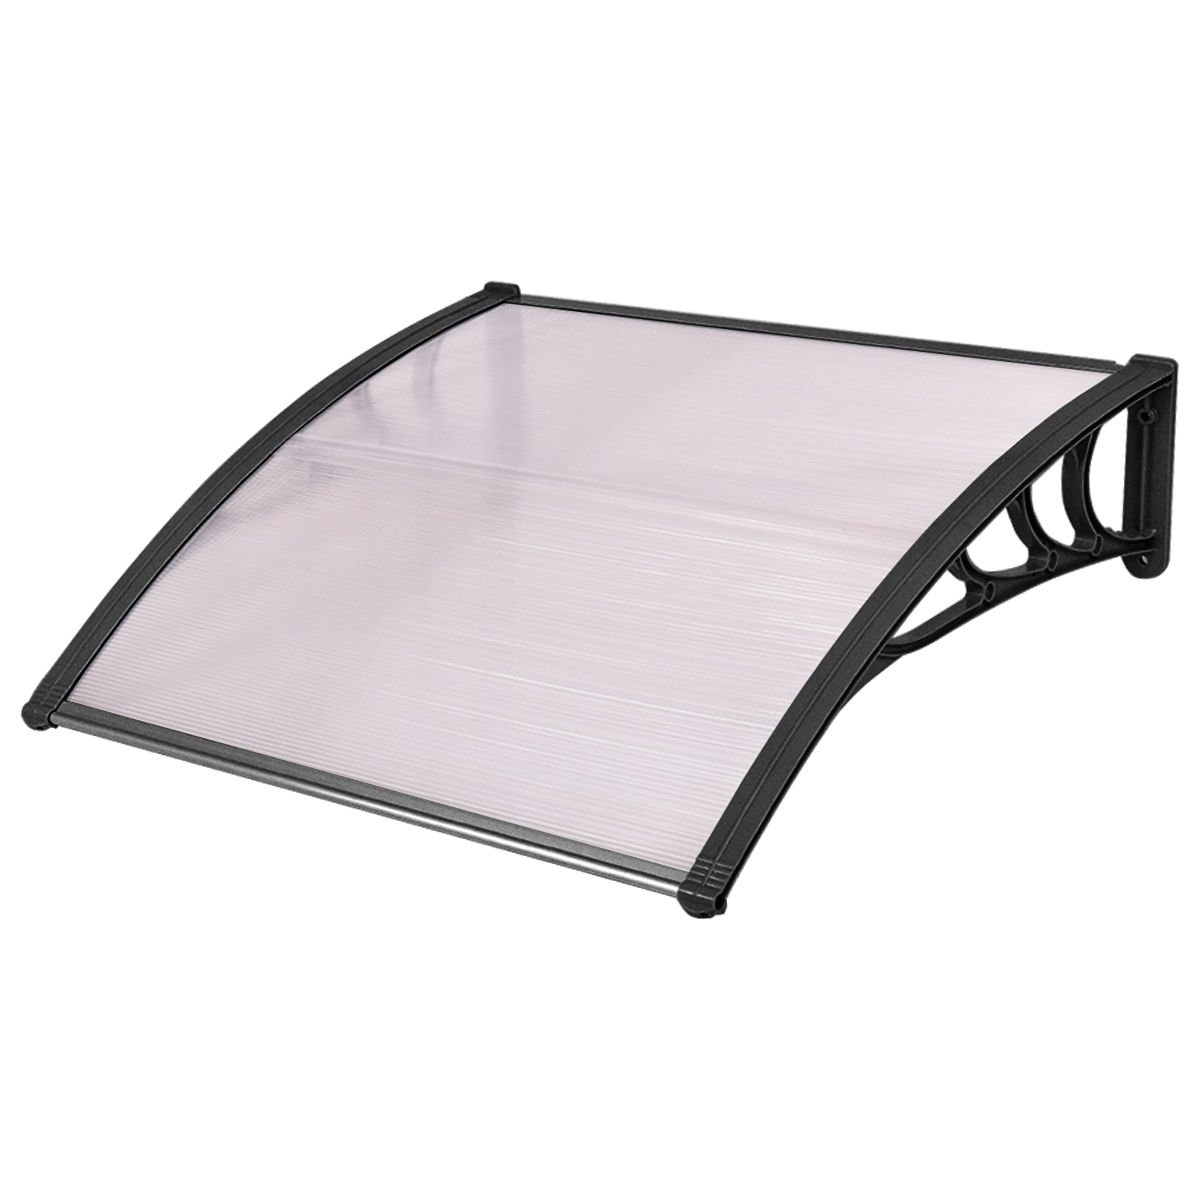 Tangkula 40''x 40'' Window Awning Modern Polycarbonate Cover Front Door Outdoor Patio Canopy Sun shetter 3 Colors (Clear with Black Edge)